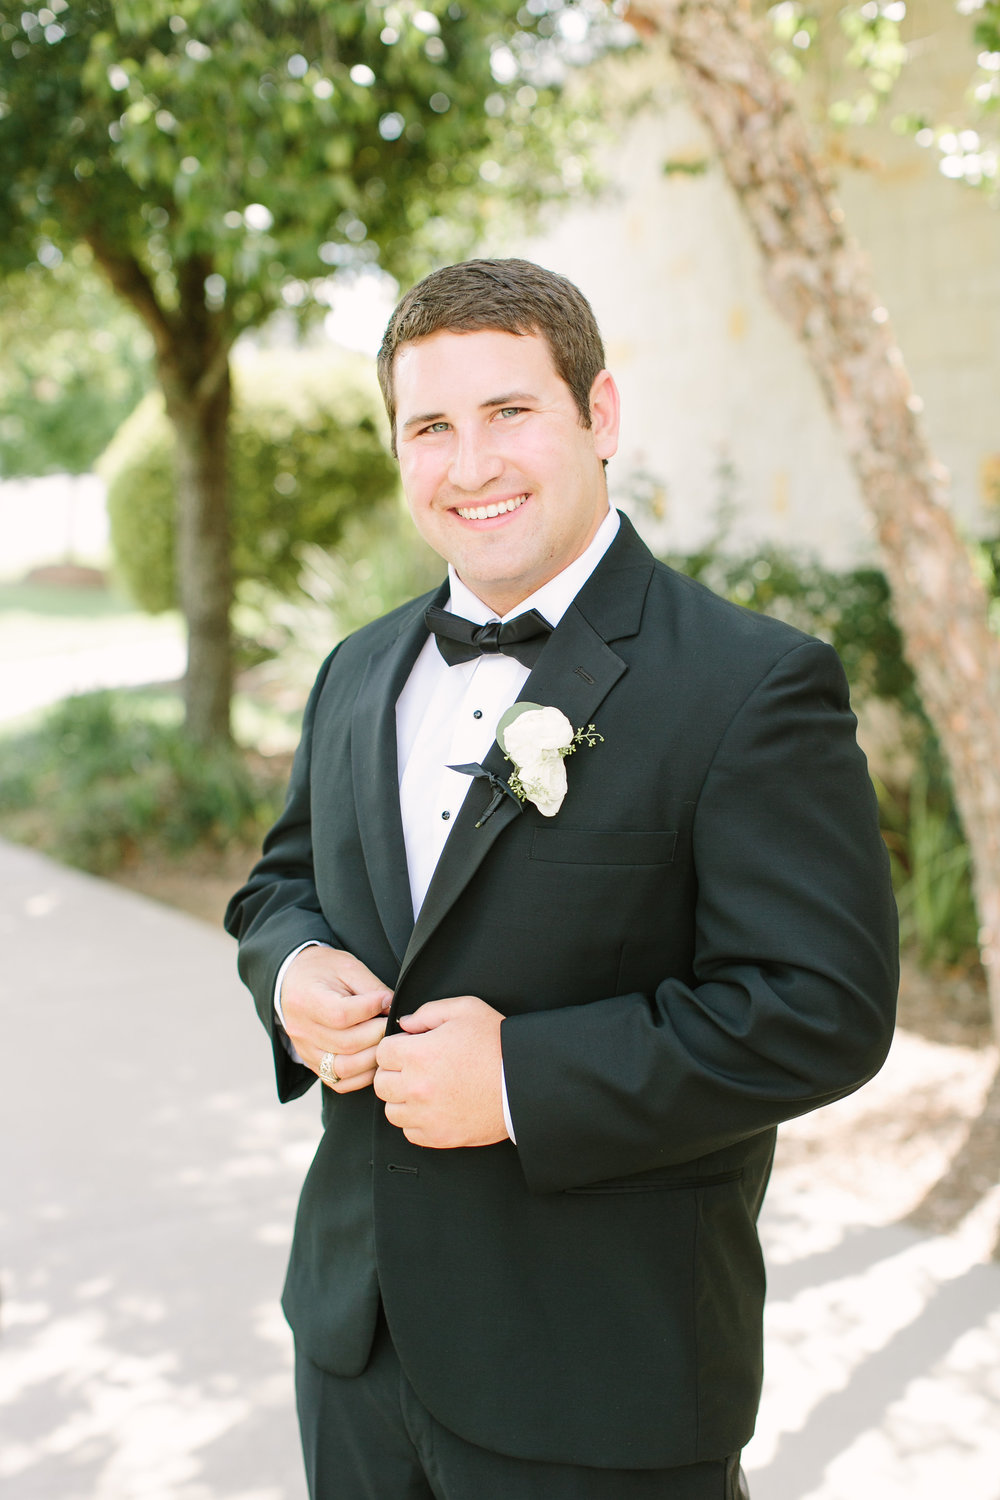 groom-black-tux-white-boutonniere-by-maxit-flower-design-in-houston-texas